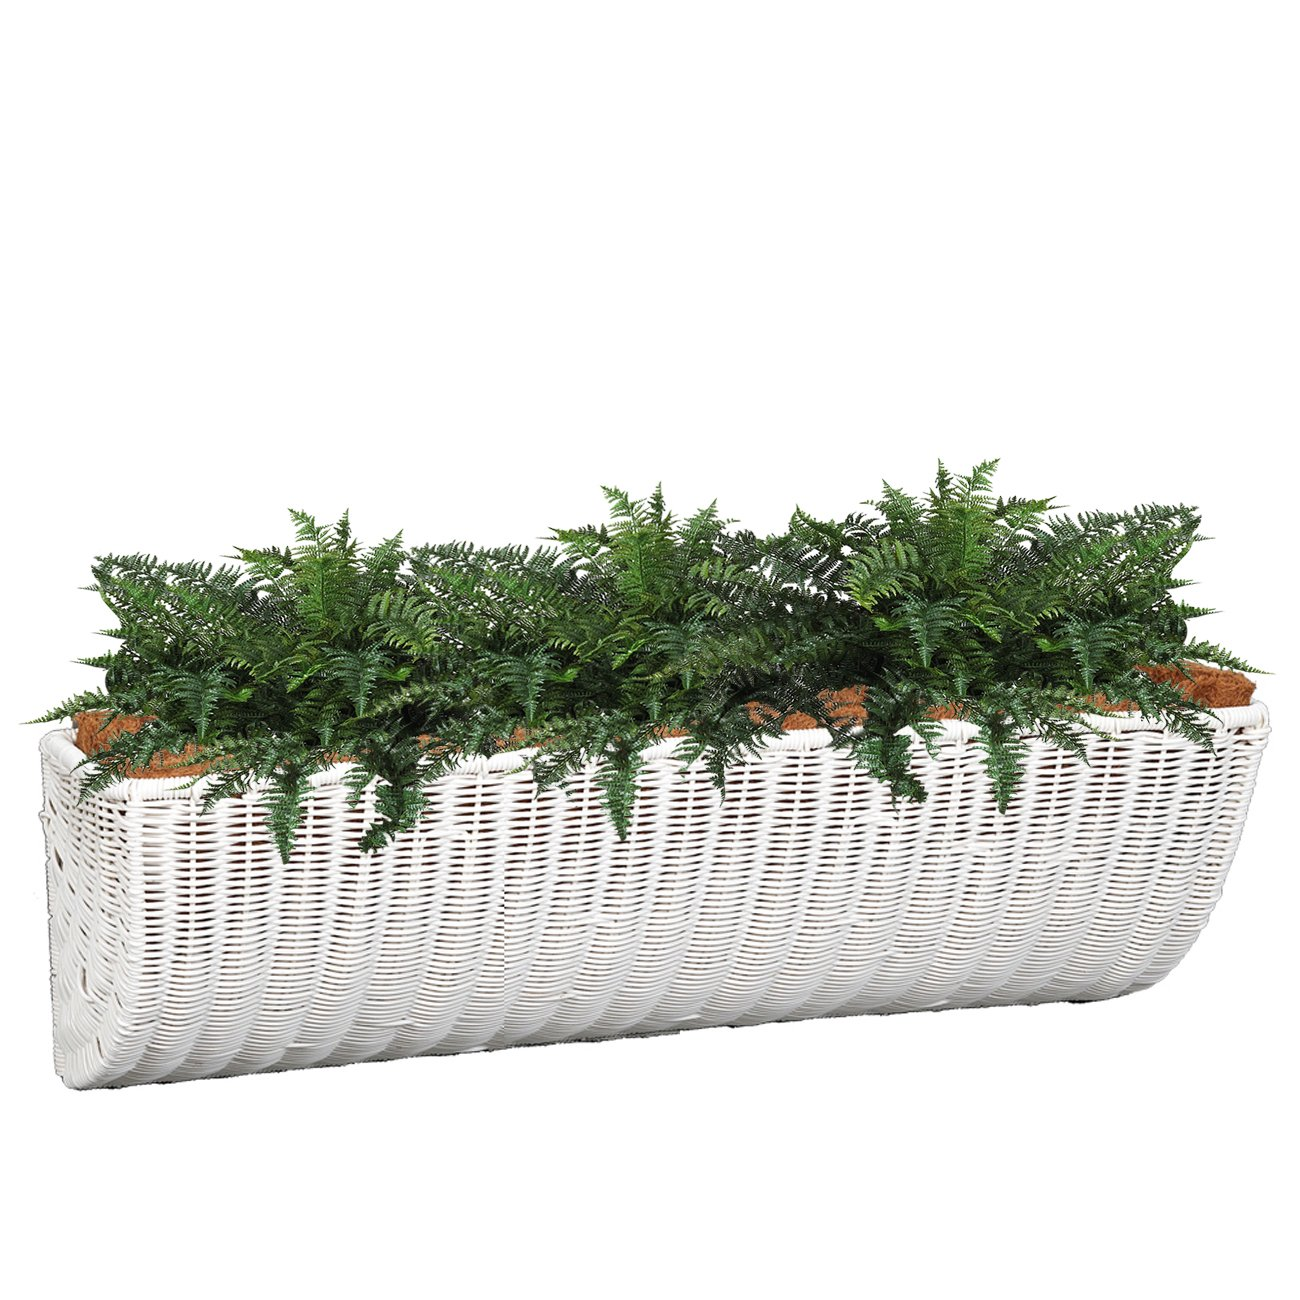 DMC Products 36-Inch Resin Wicker Wall Basket, White